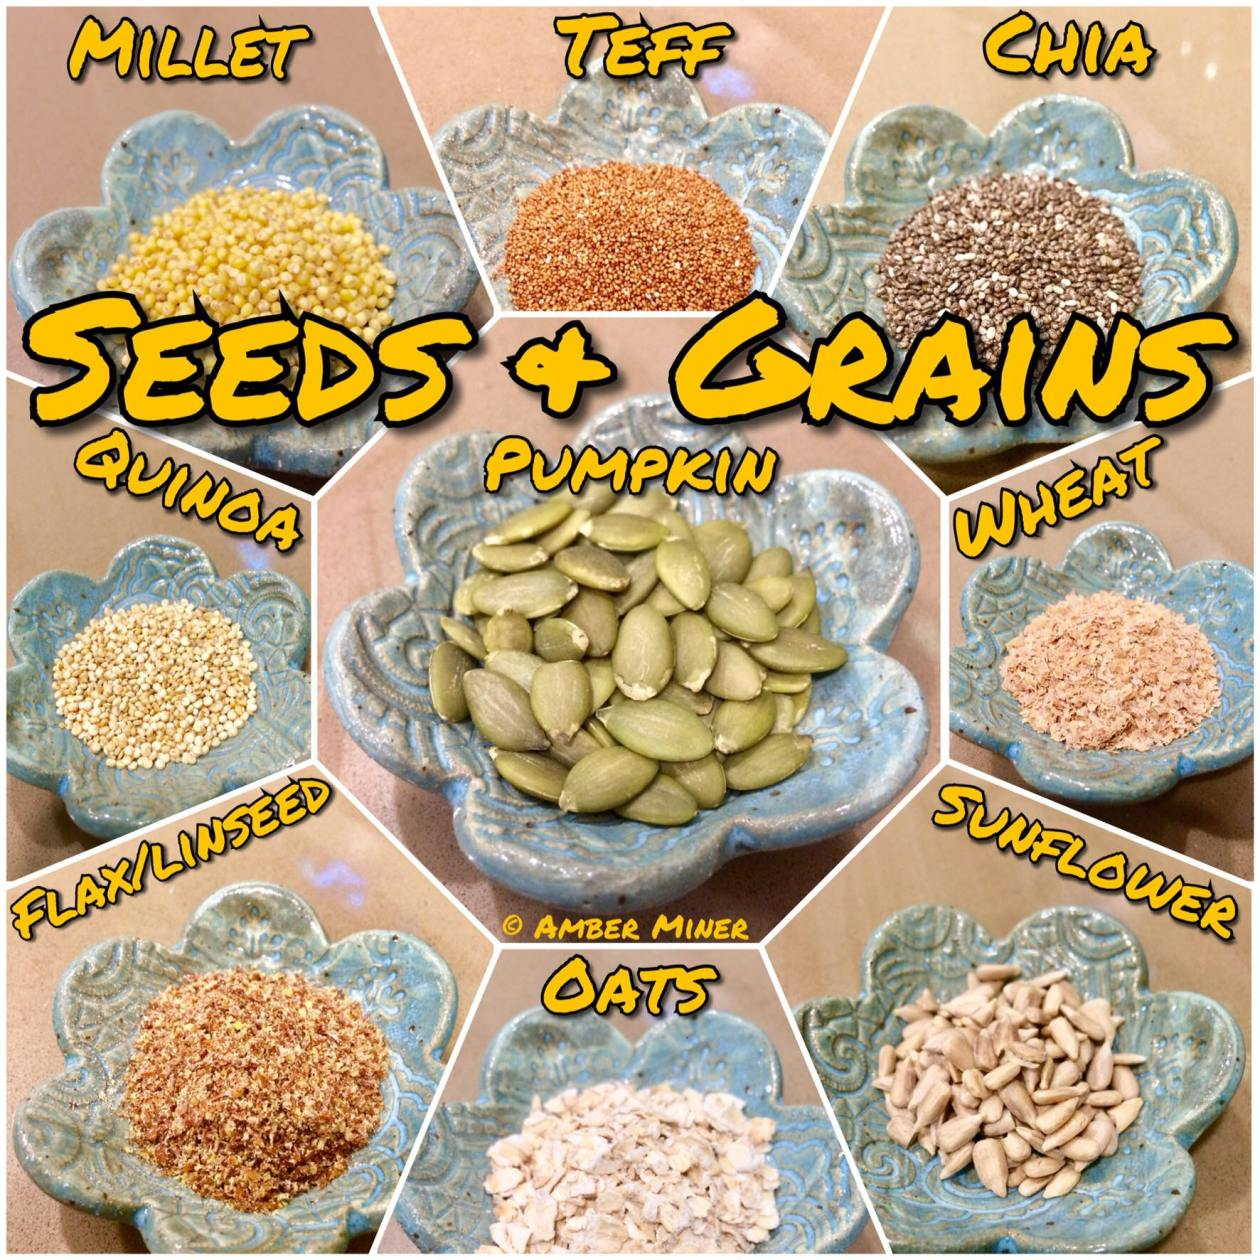 Seeds and Grains for hermit crabs